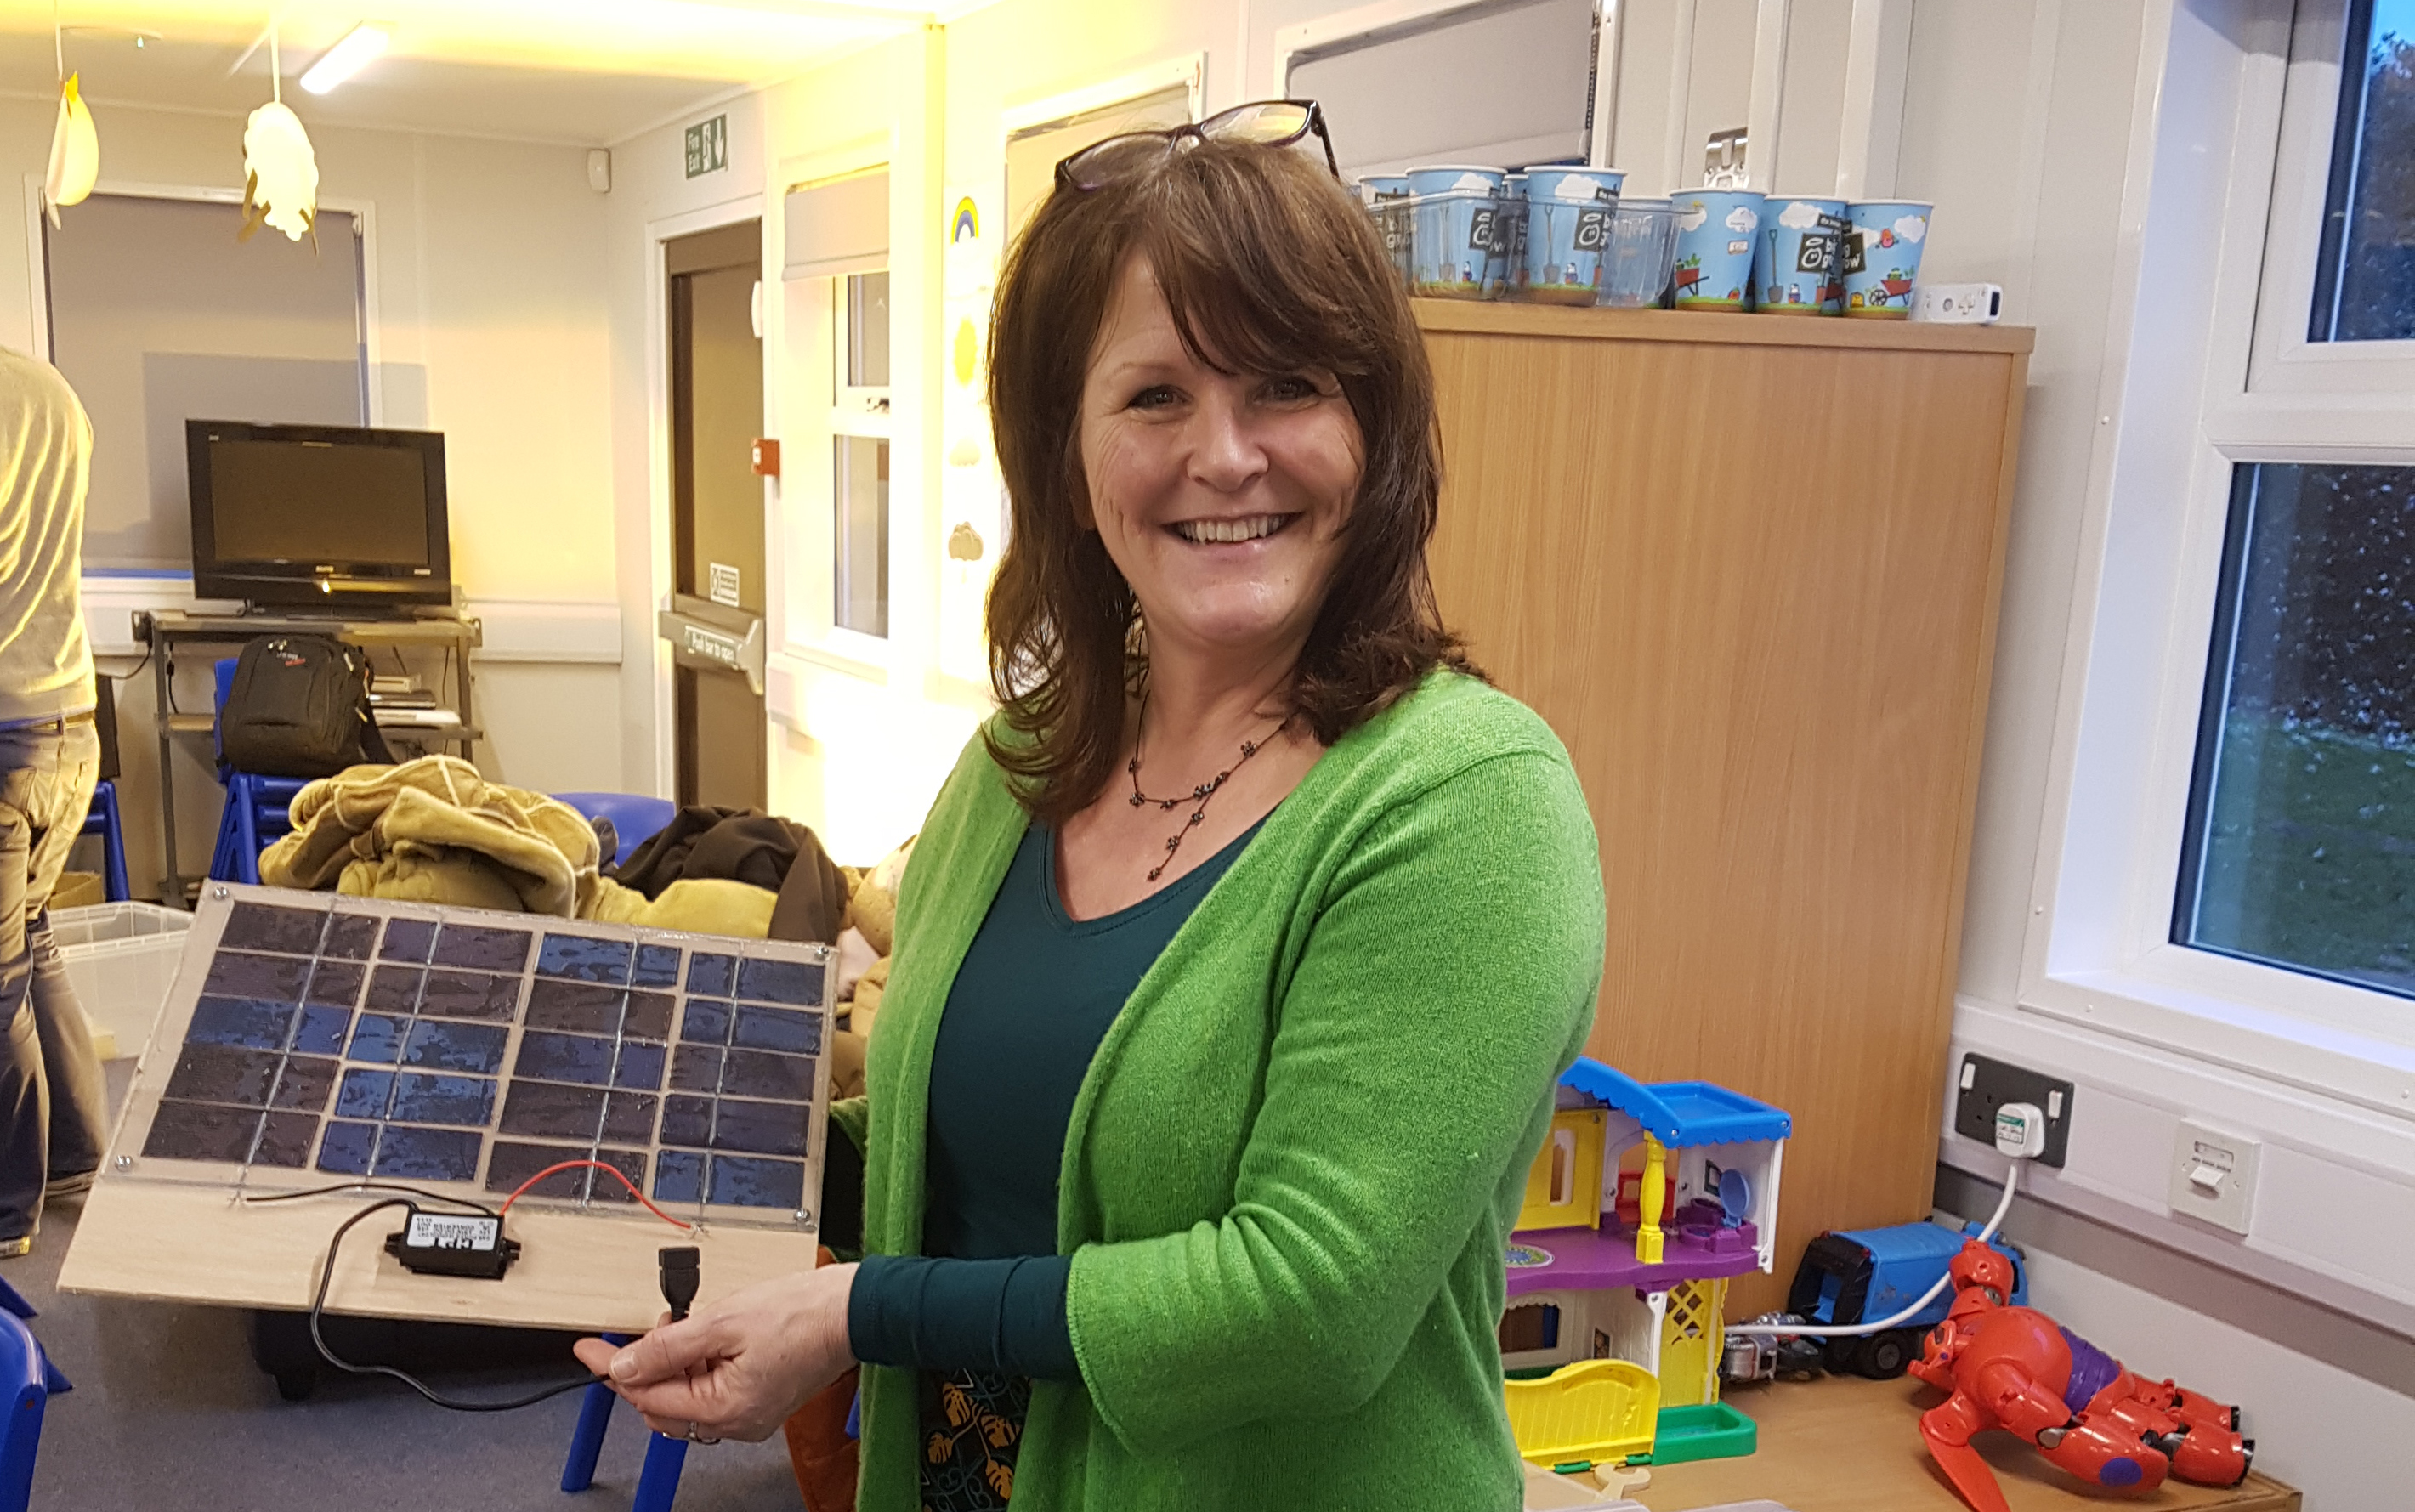 DIY solar workshop at Sandown School